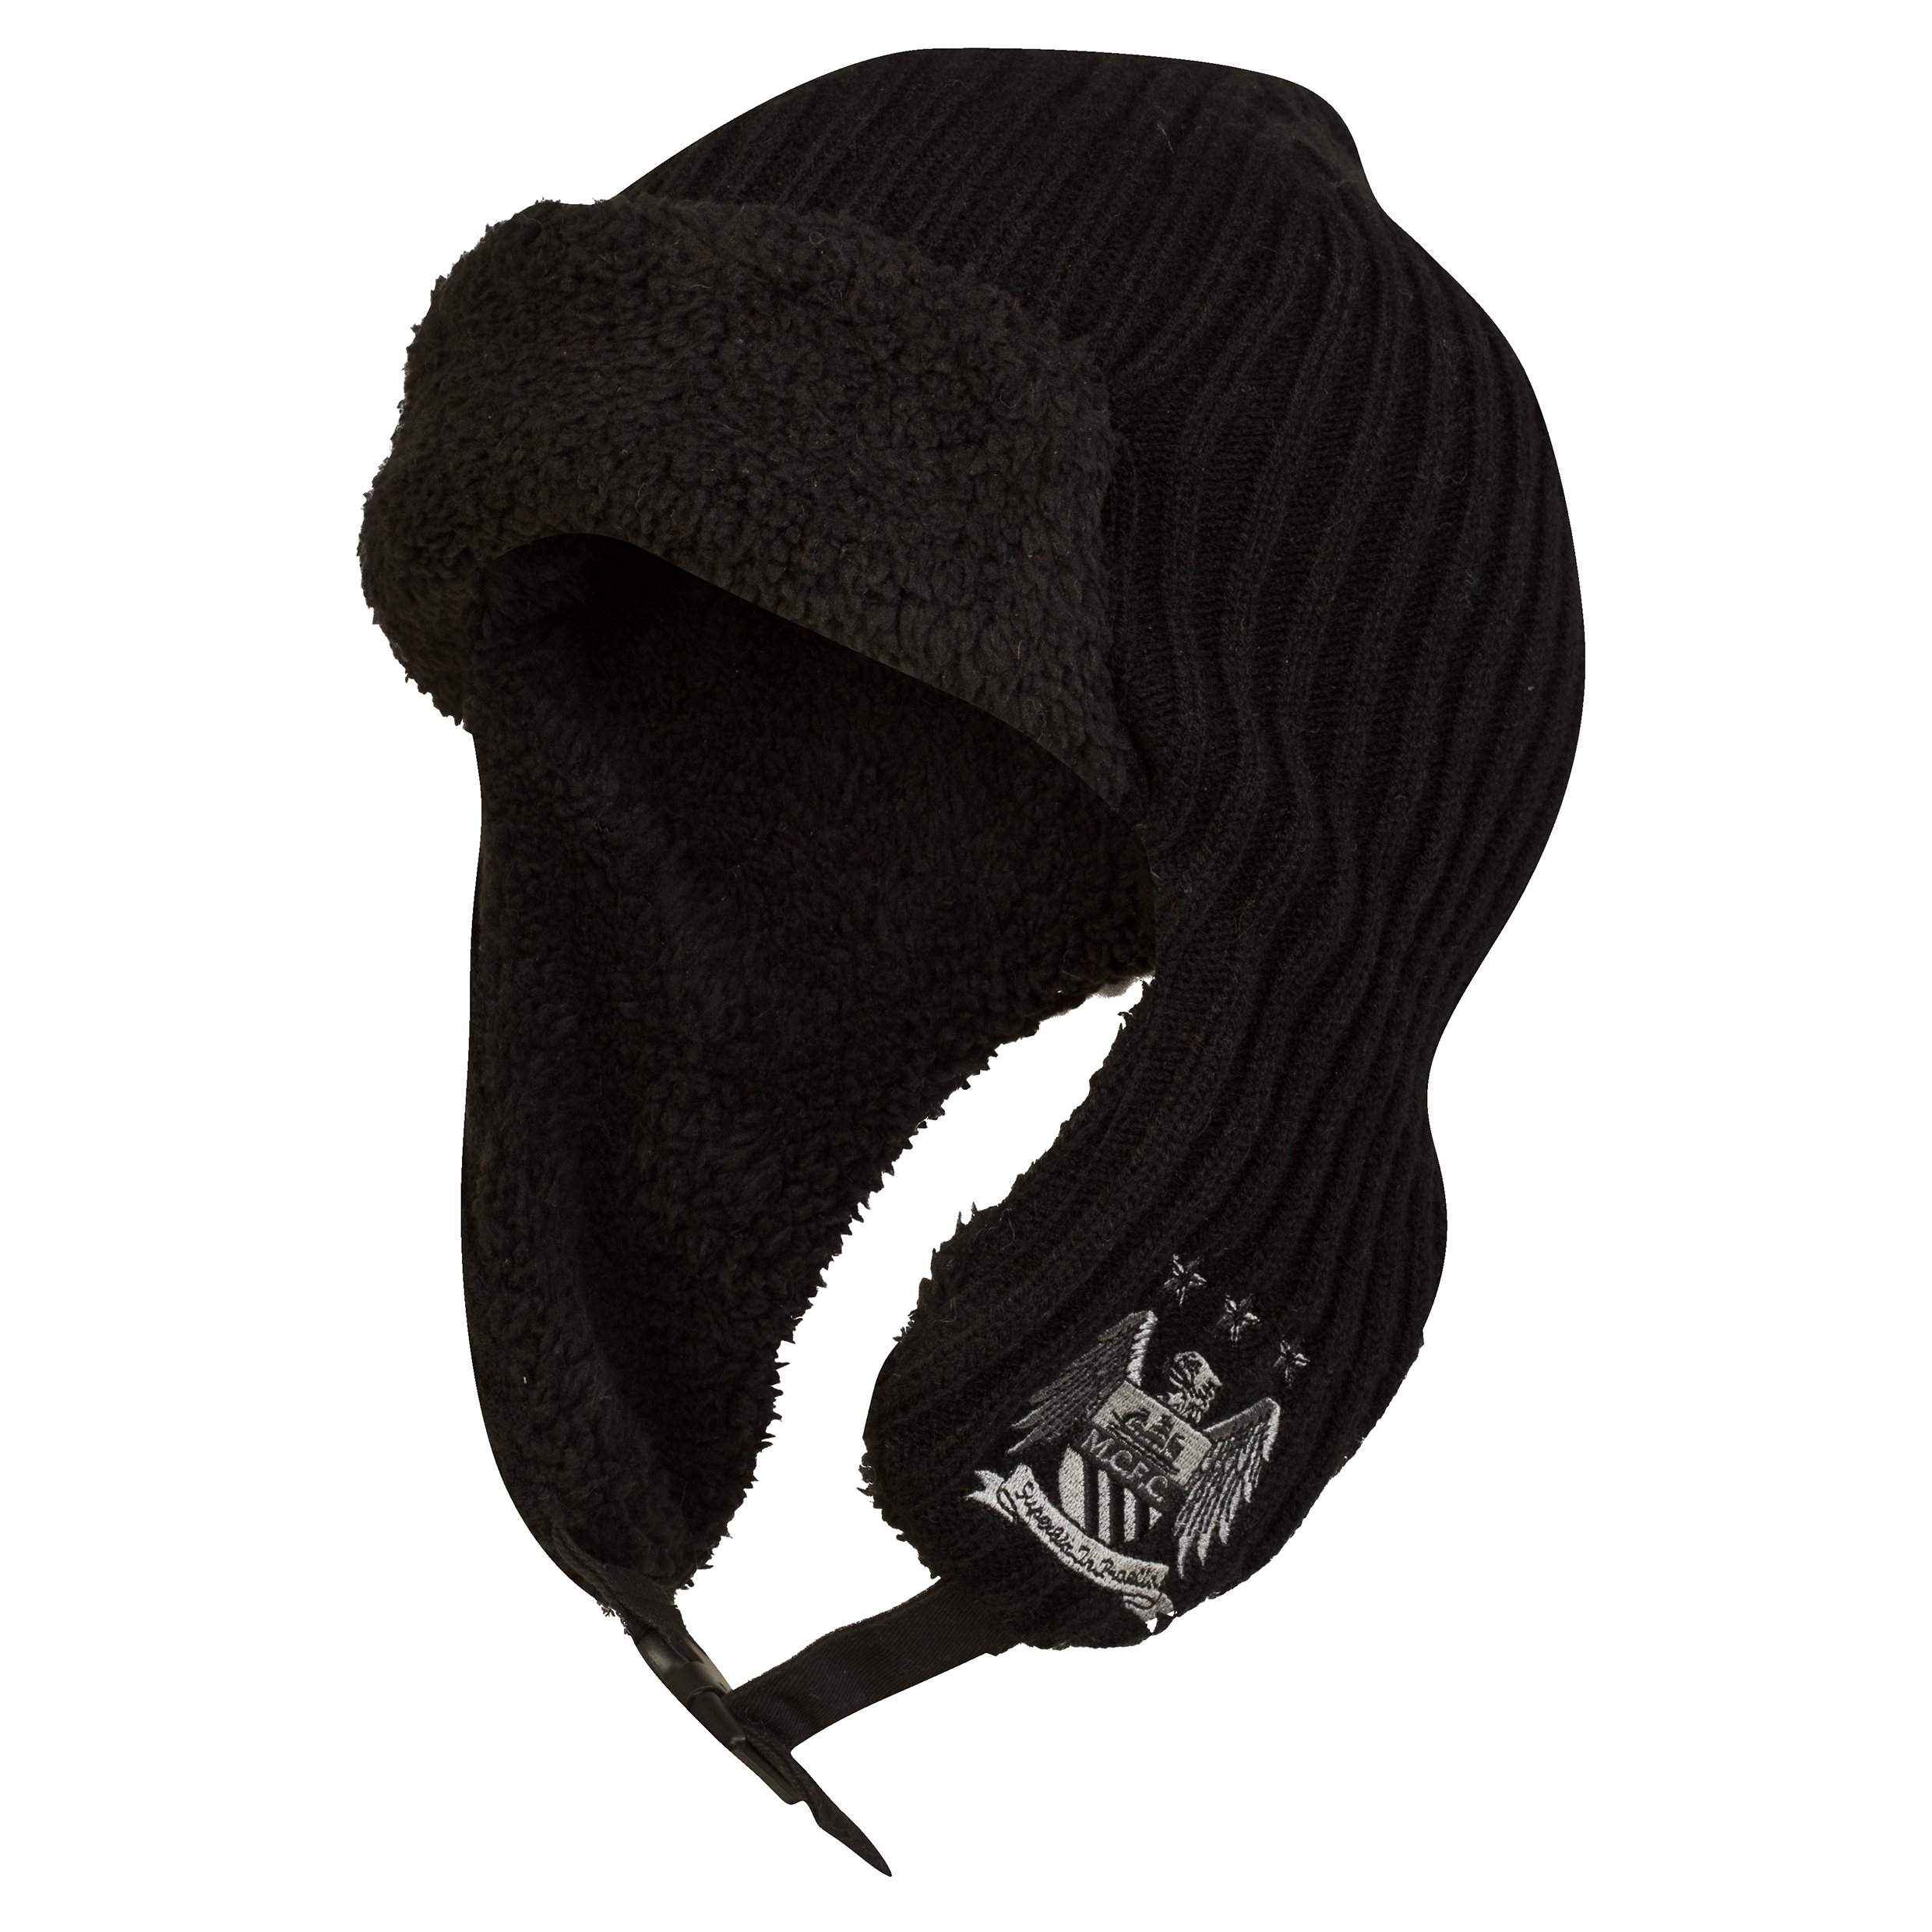 Manchester City Performance Trapper Hat - Black - Adult